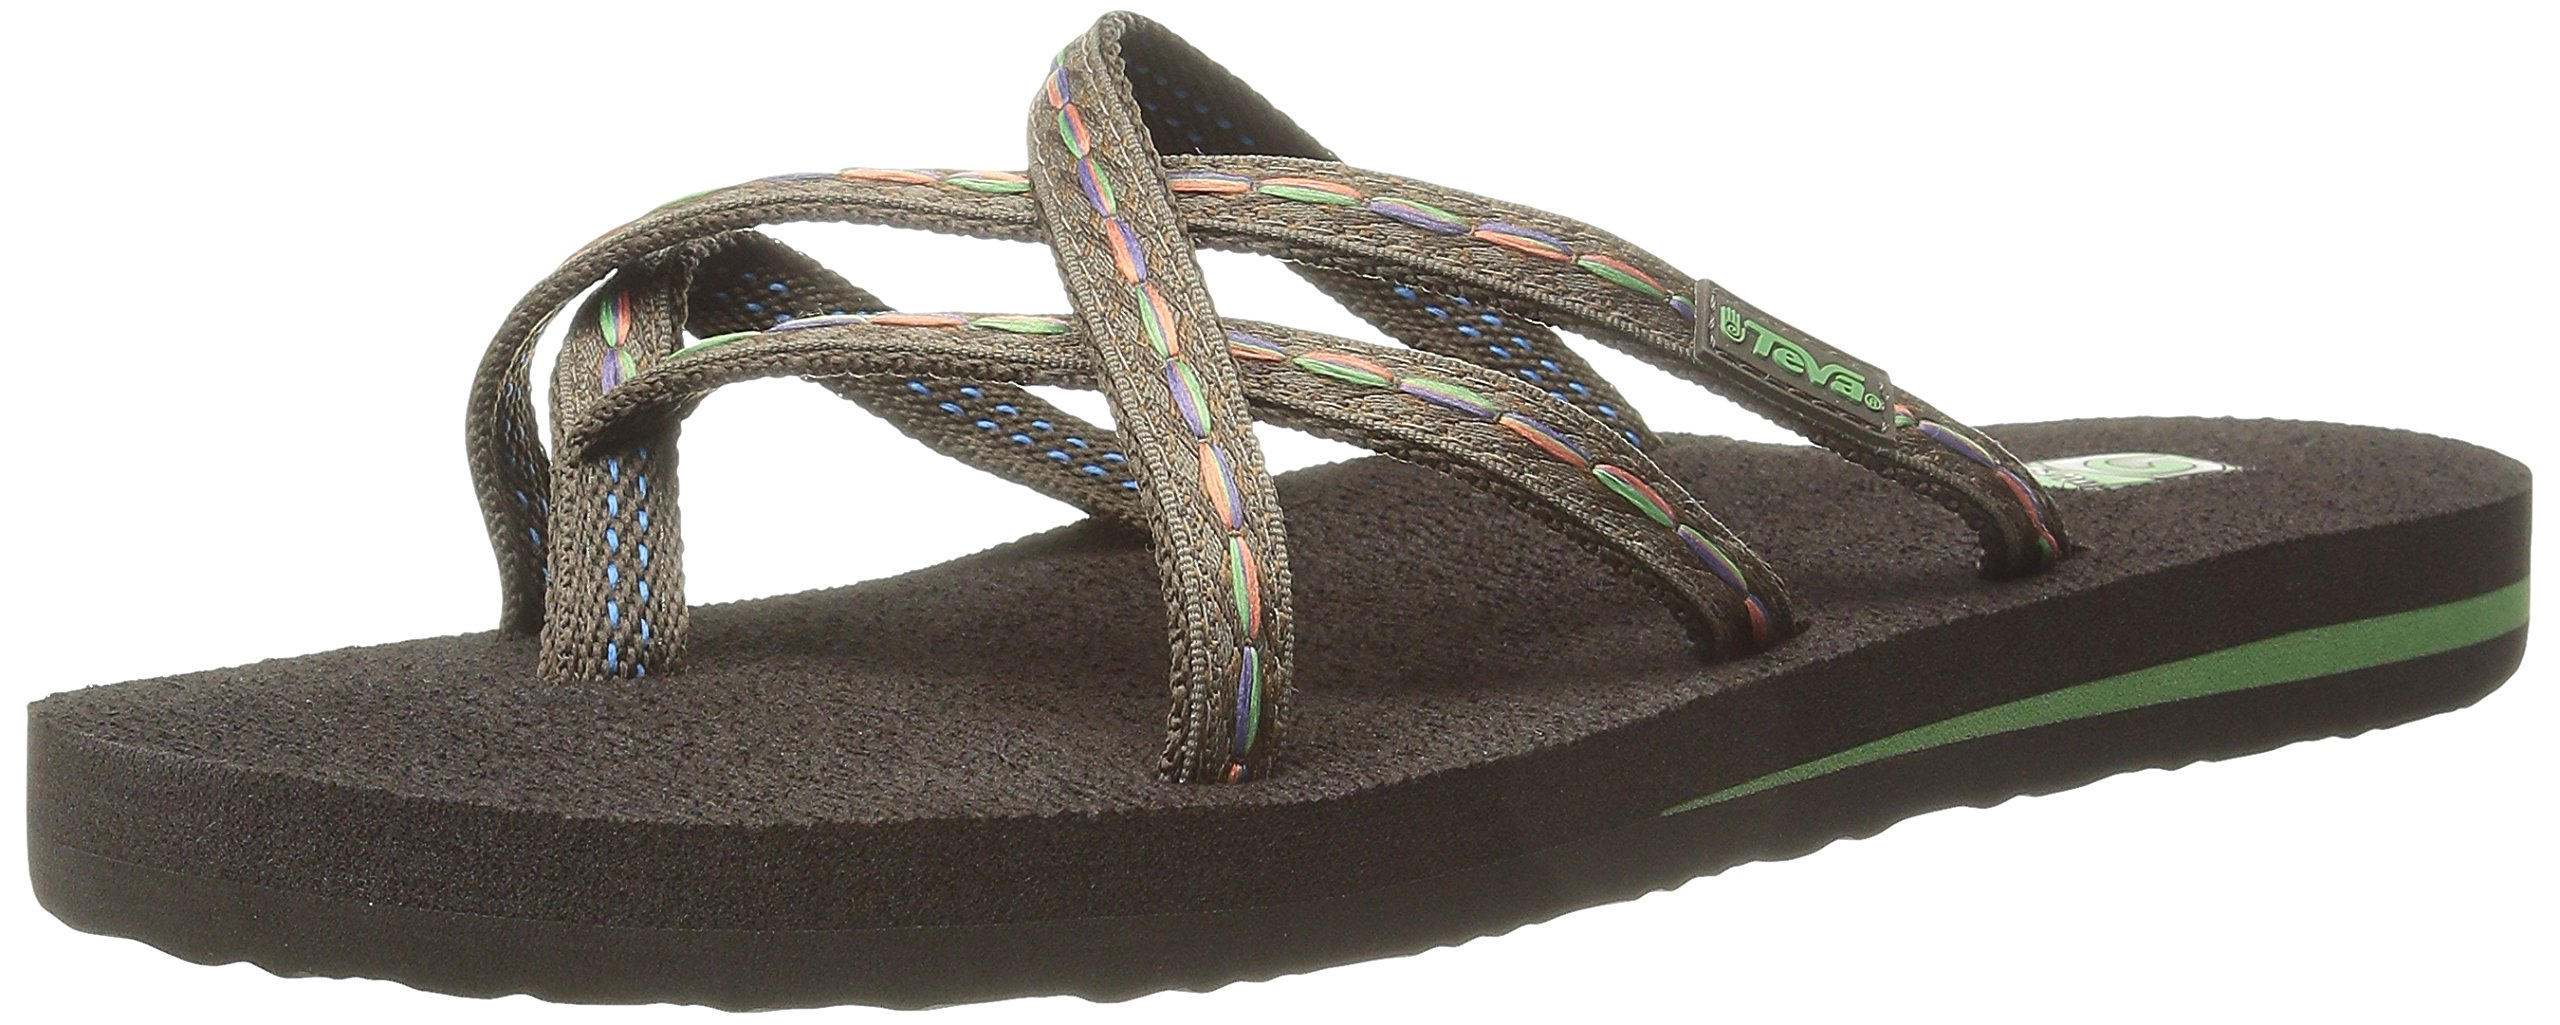 7f4c9c1493bc0 Galleon - Teva Women s Olowahu Flip-Flop - 8 B(M) US - Felicitas Brown